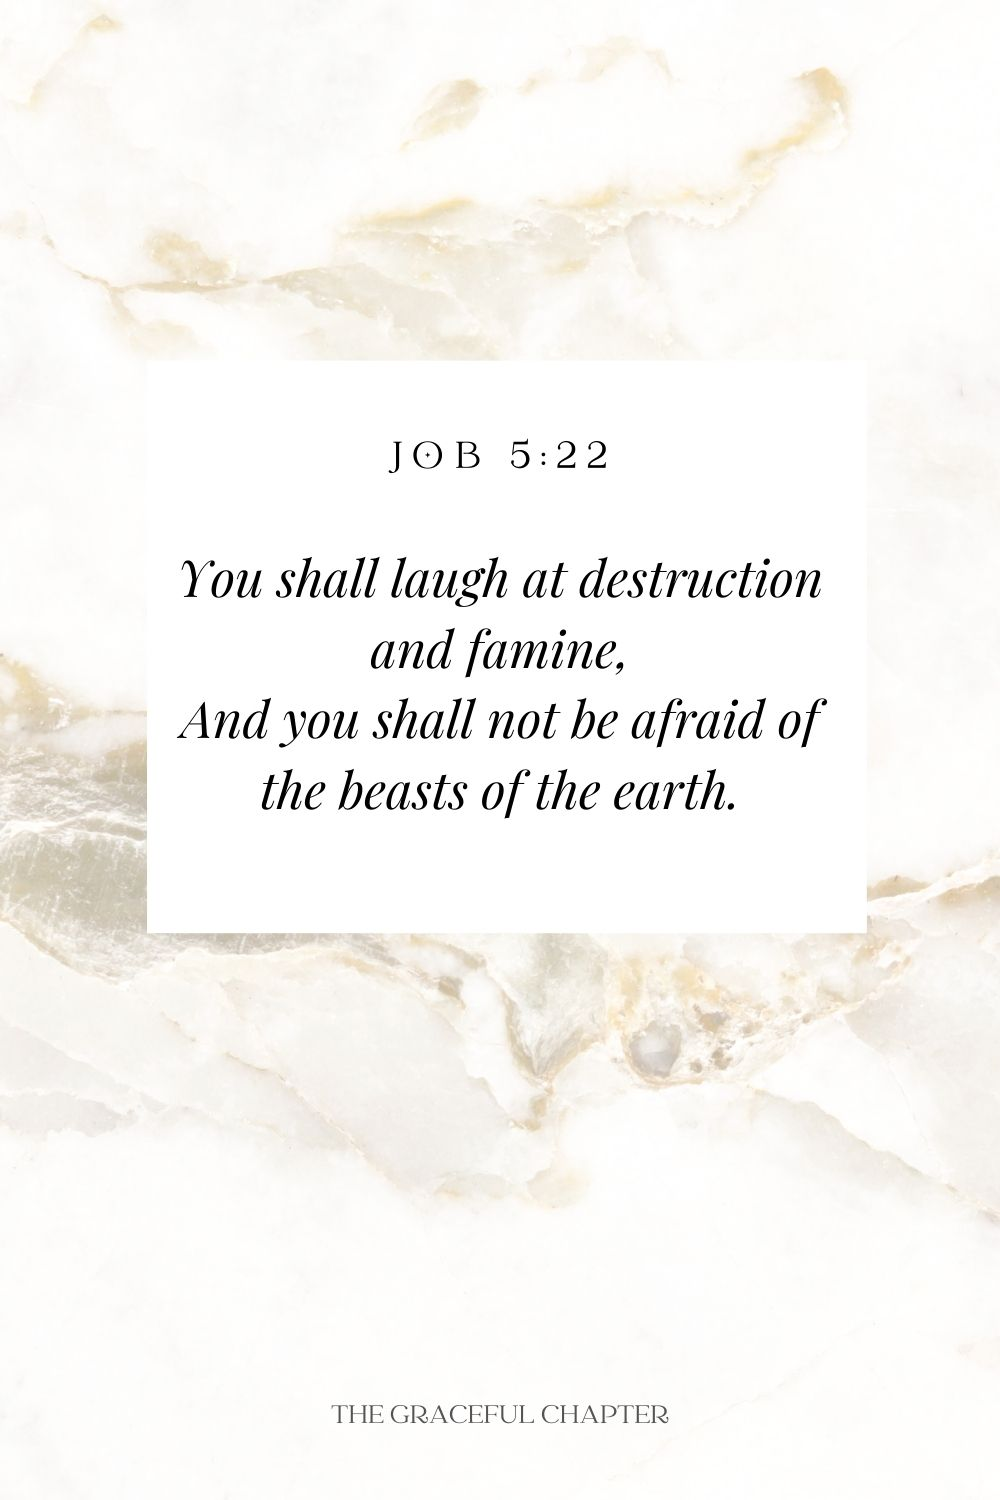 You shall laugh at destruction and famine, And you shall not be afraid of the beasts of the earth. Job 5:22